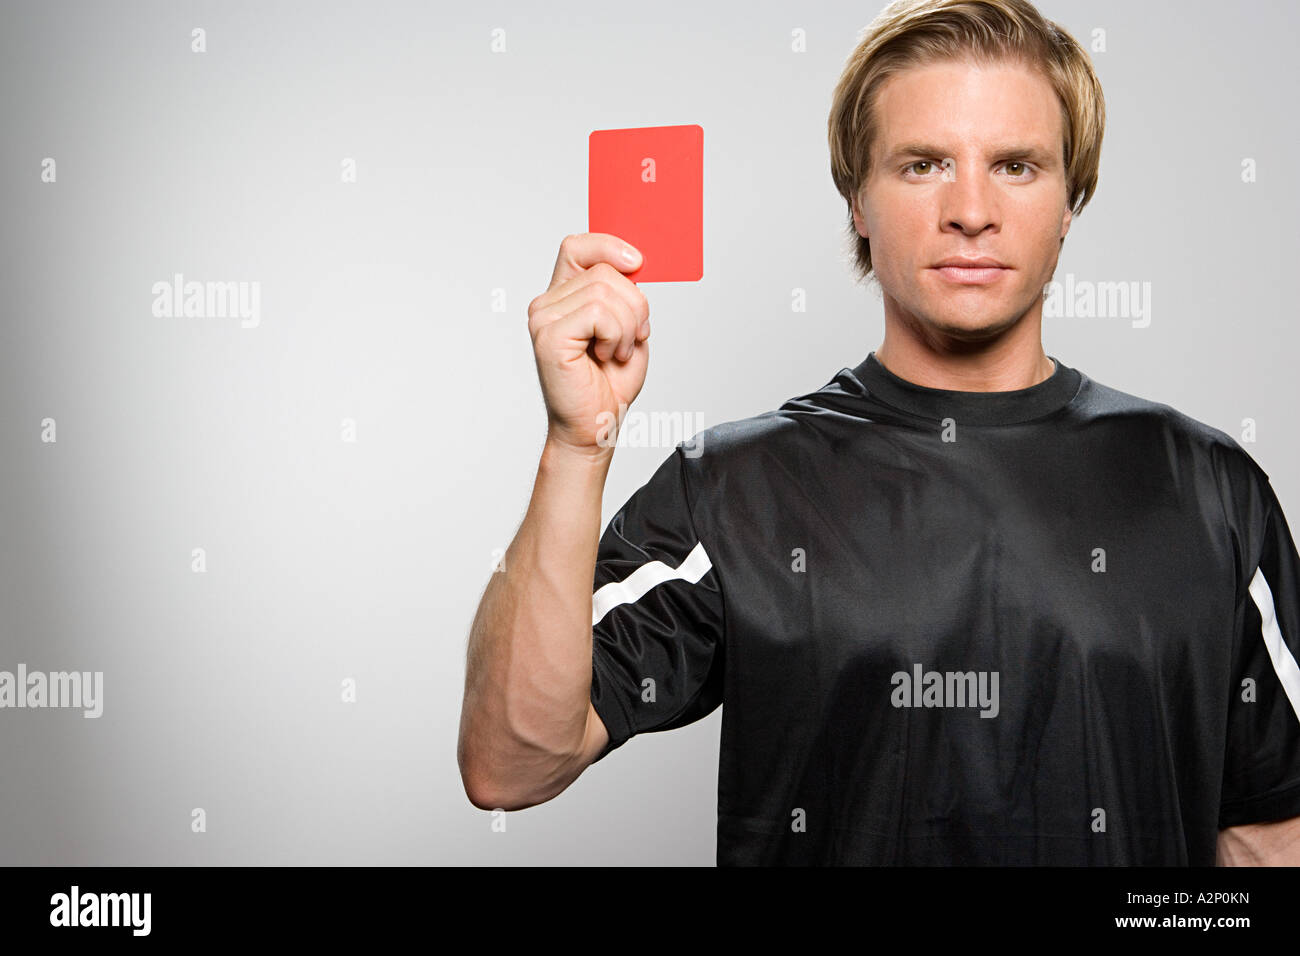 Referee holding red card - Stock Image